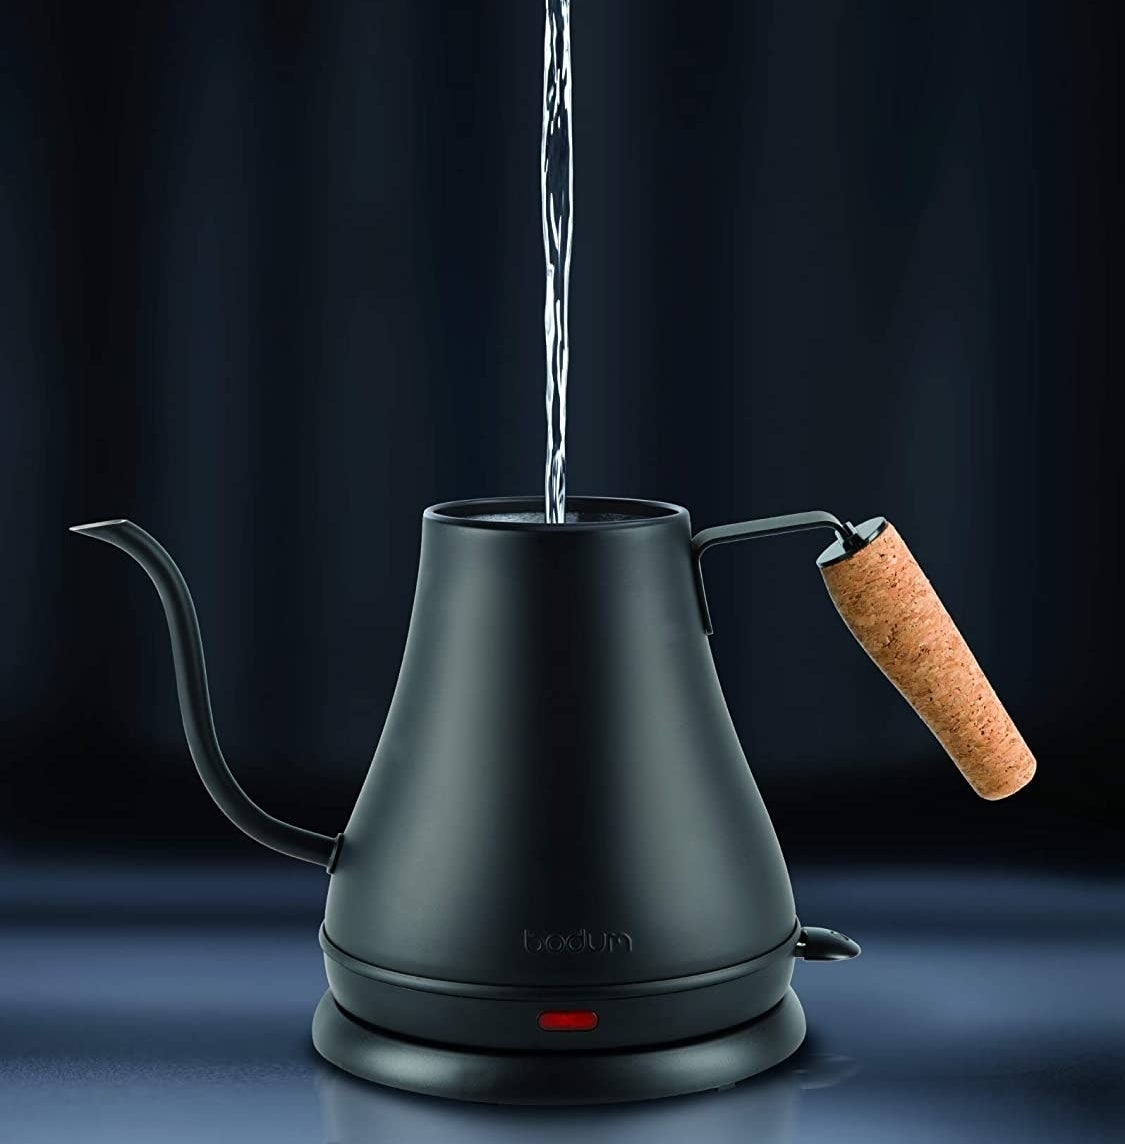 A person pouring water into the kettle